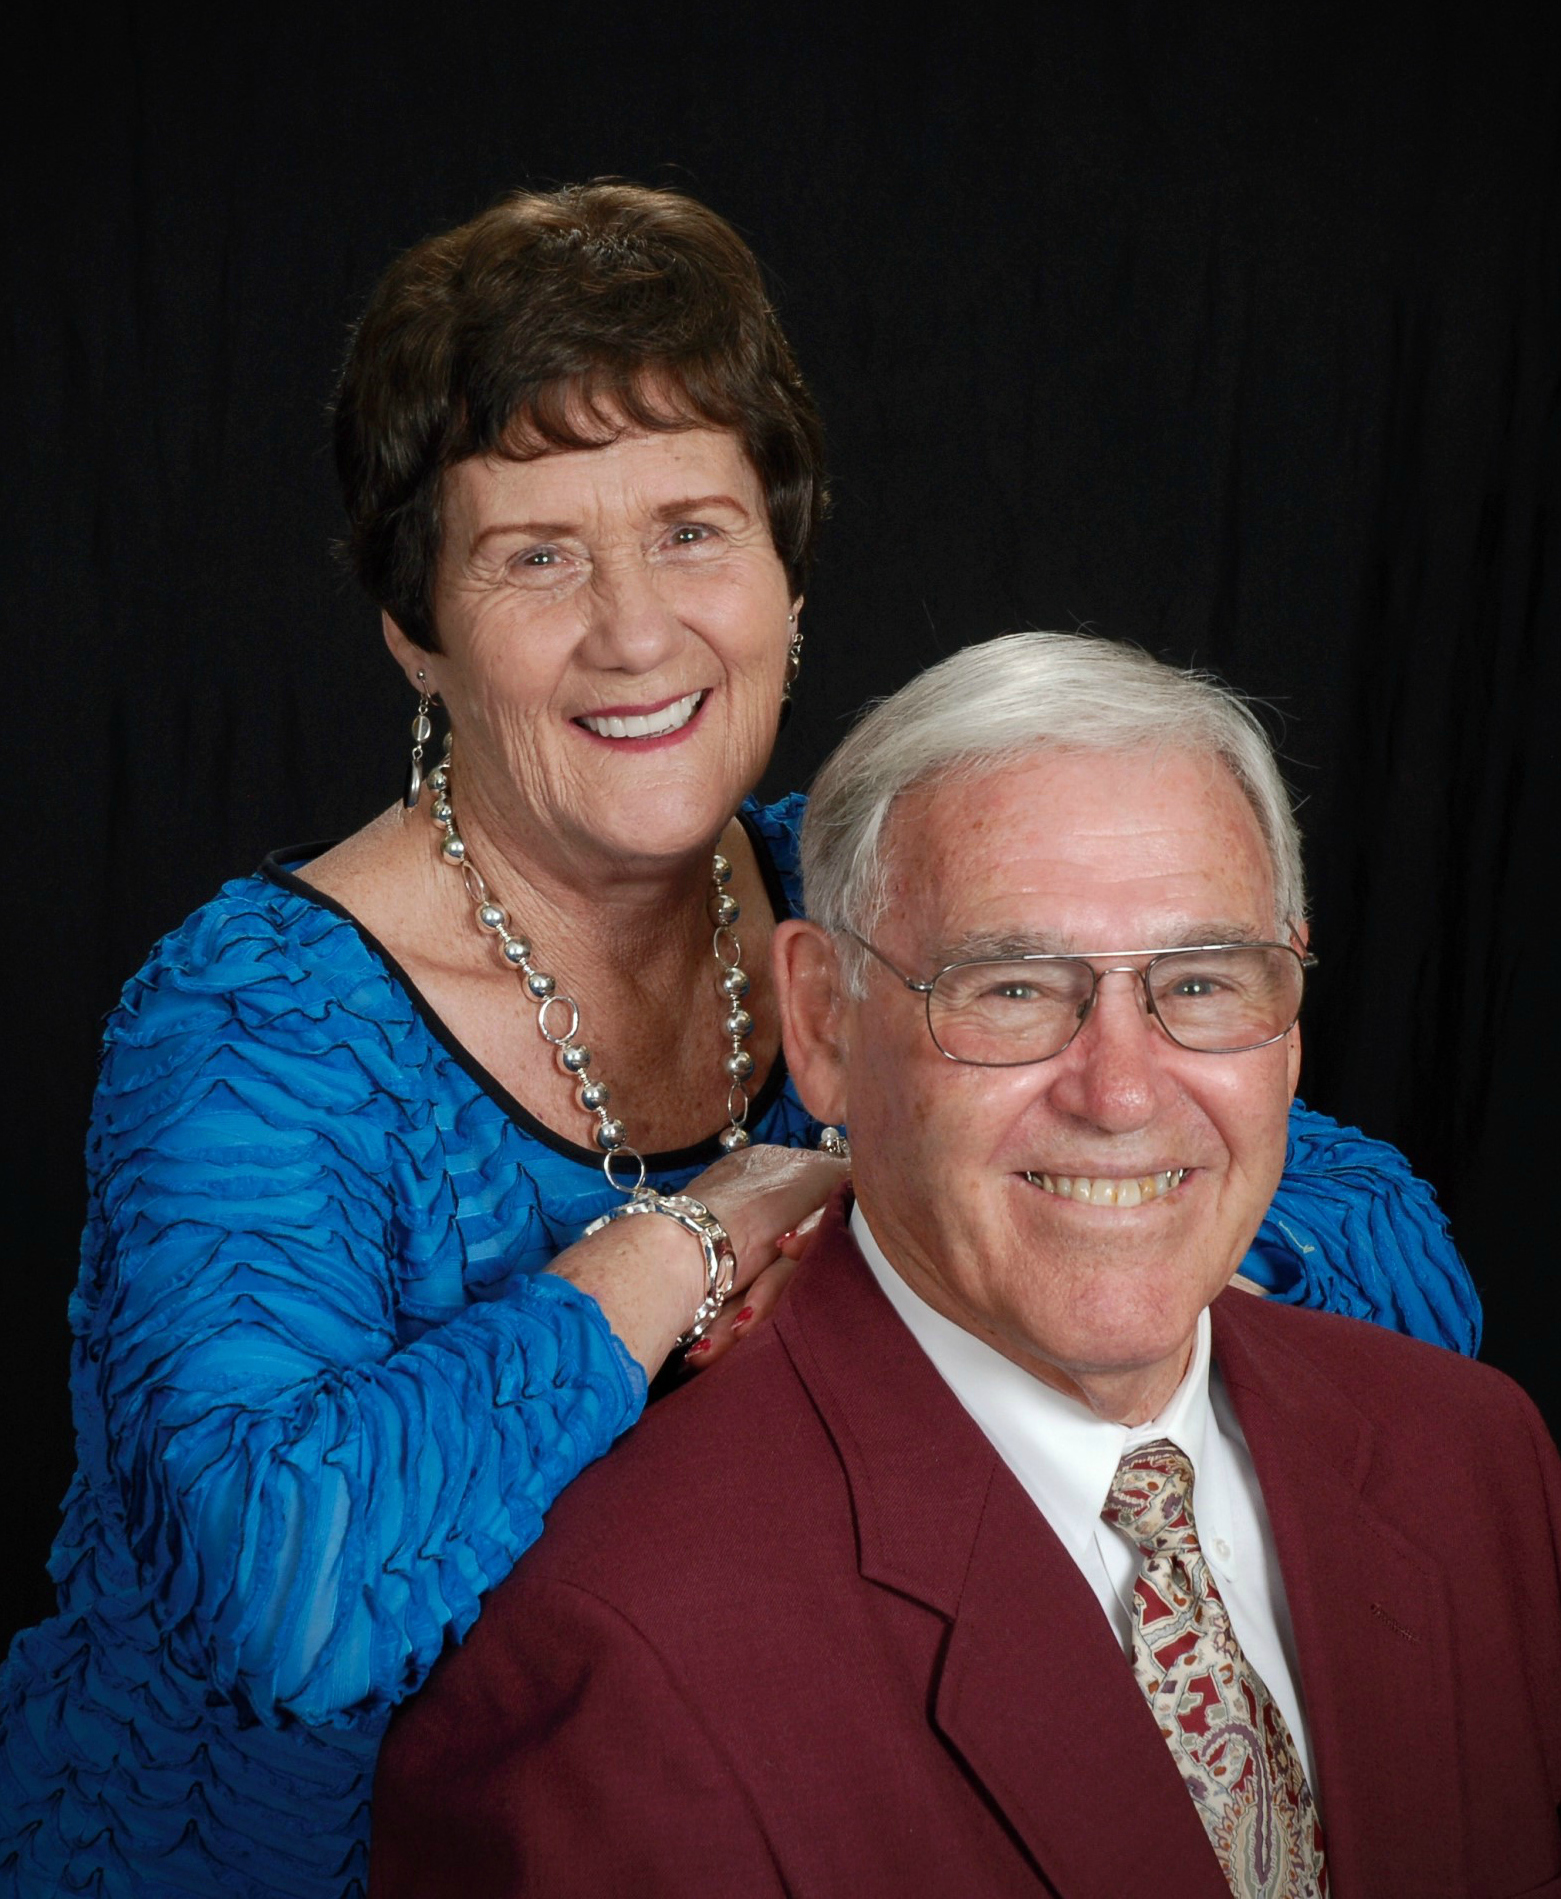 Ted and Gerrye Jenkins are the recipients of the 2017 Georgia 4-H Lifetime Achievement Award. Ted Jenkins, a retired University of Georgia Cooperative Extension specialist, led the Georgia 4-H summer camp programs from 1980-1997. His wife, Gerrye Jenkins, served alongside him.